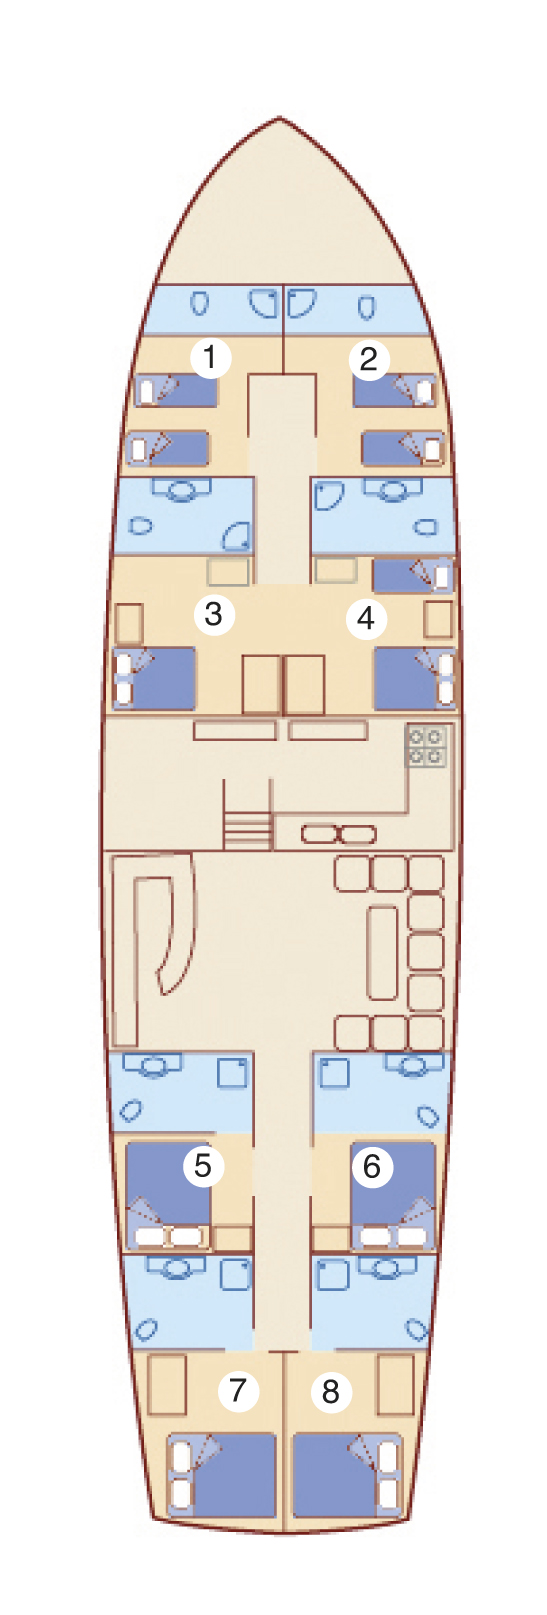 Sunworld-VIII-layout.jpg